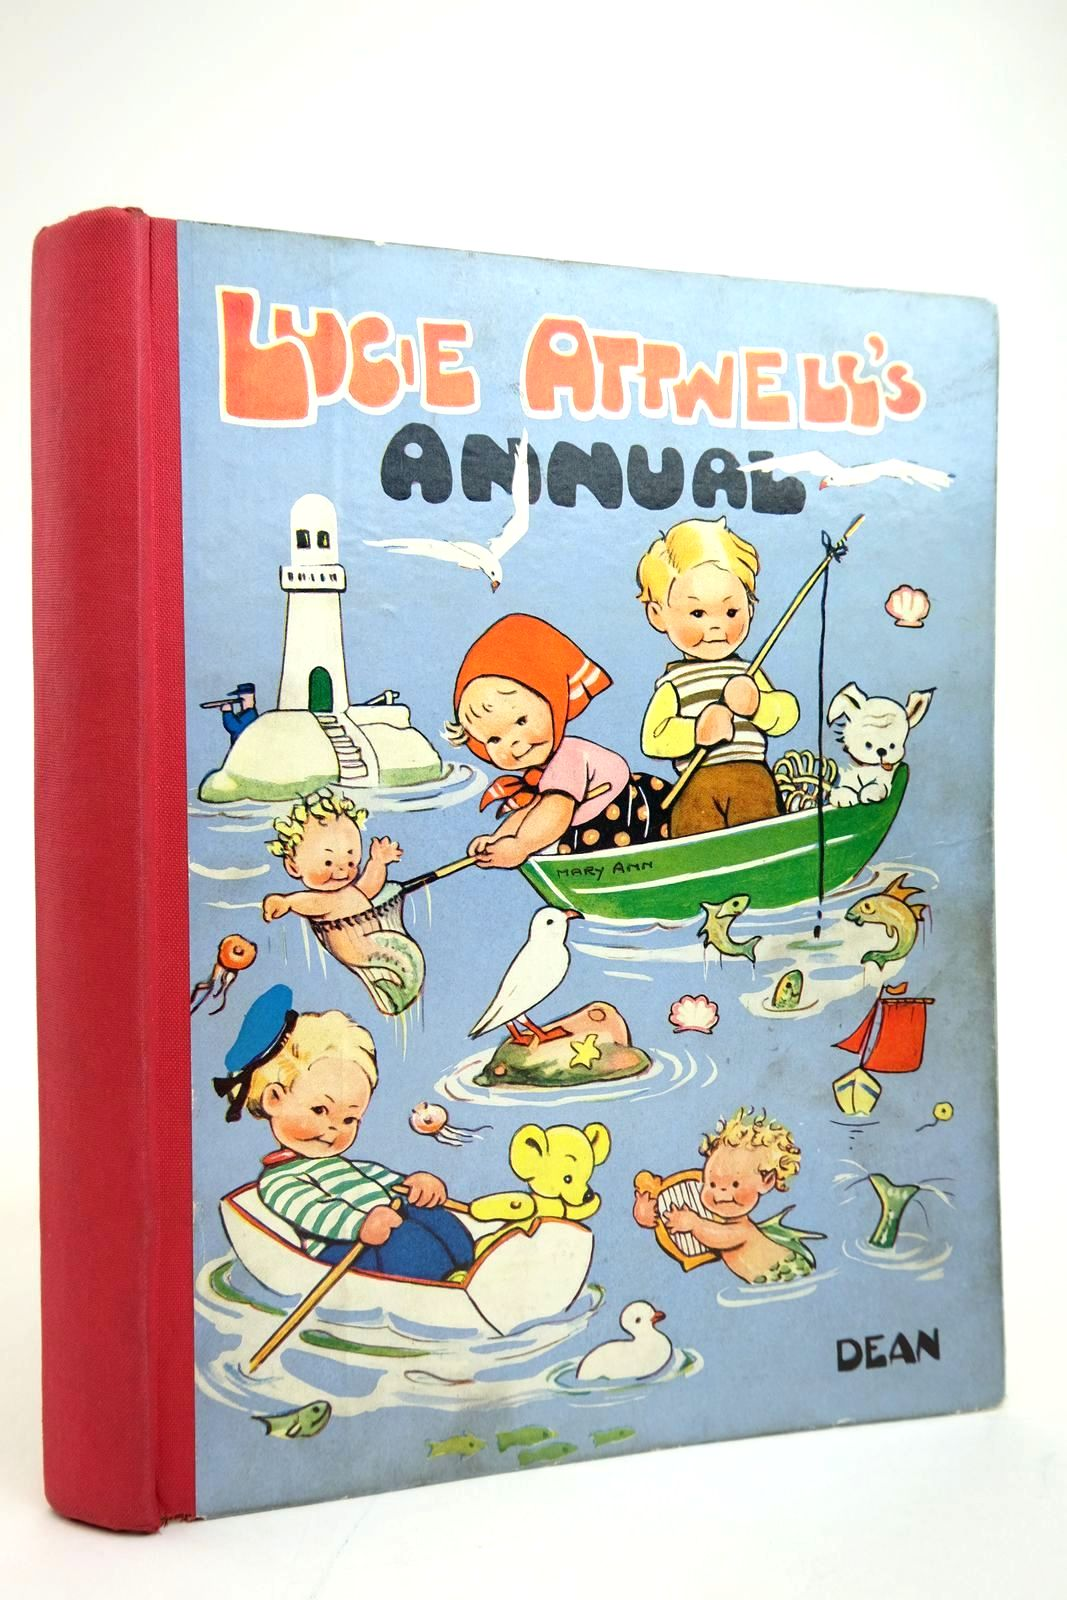 Photo of LUCIE ATTWELL'S ANNUAL 1944- Stock Number: 2135056